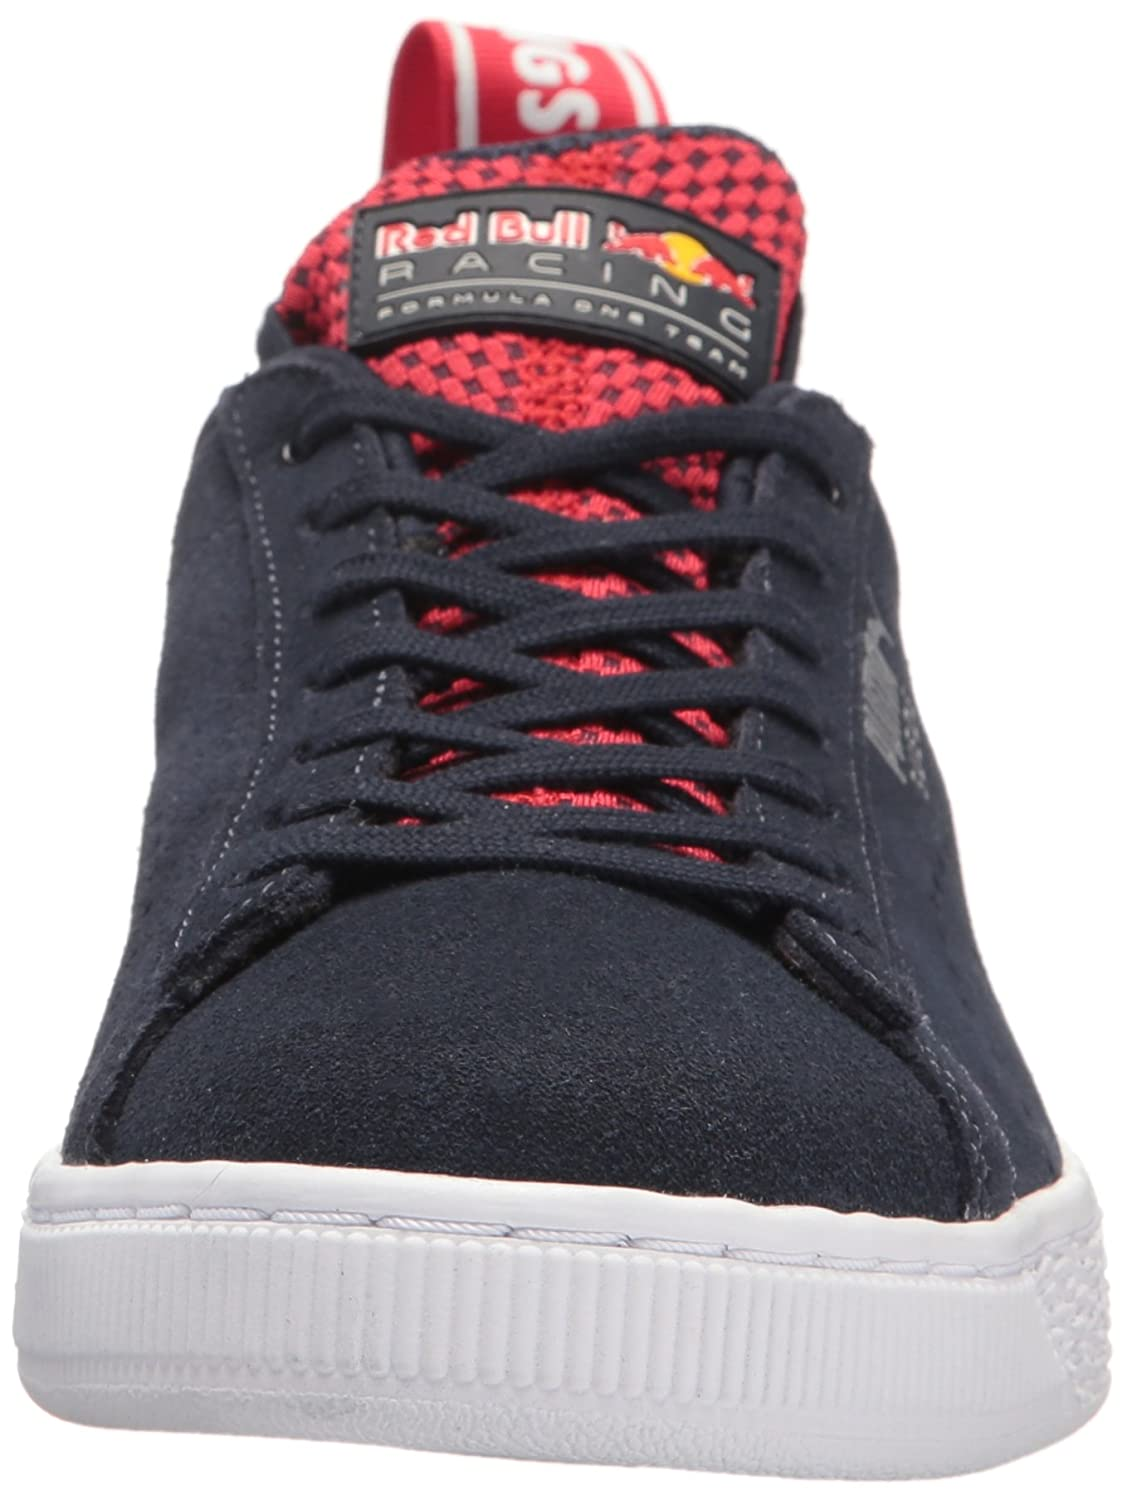 Puma Red Bull Racing Suede (Unisex)